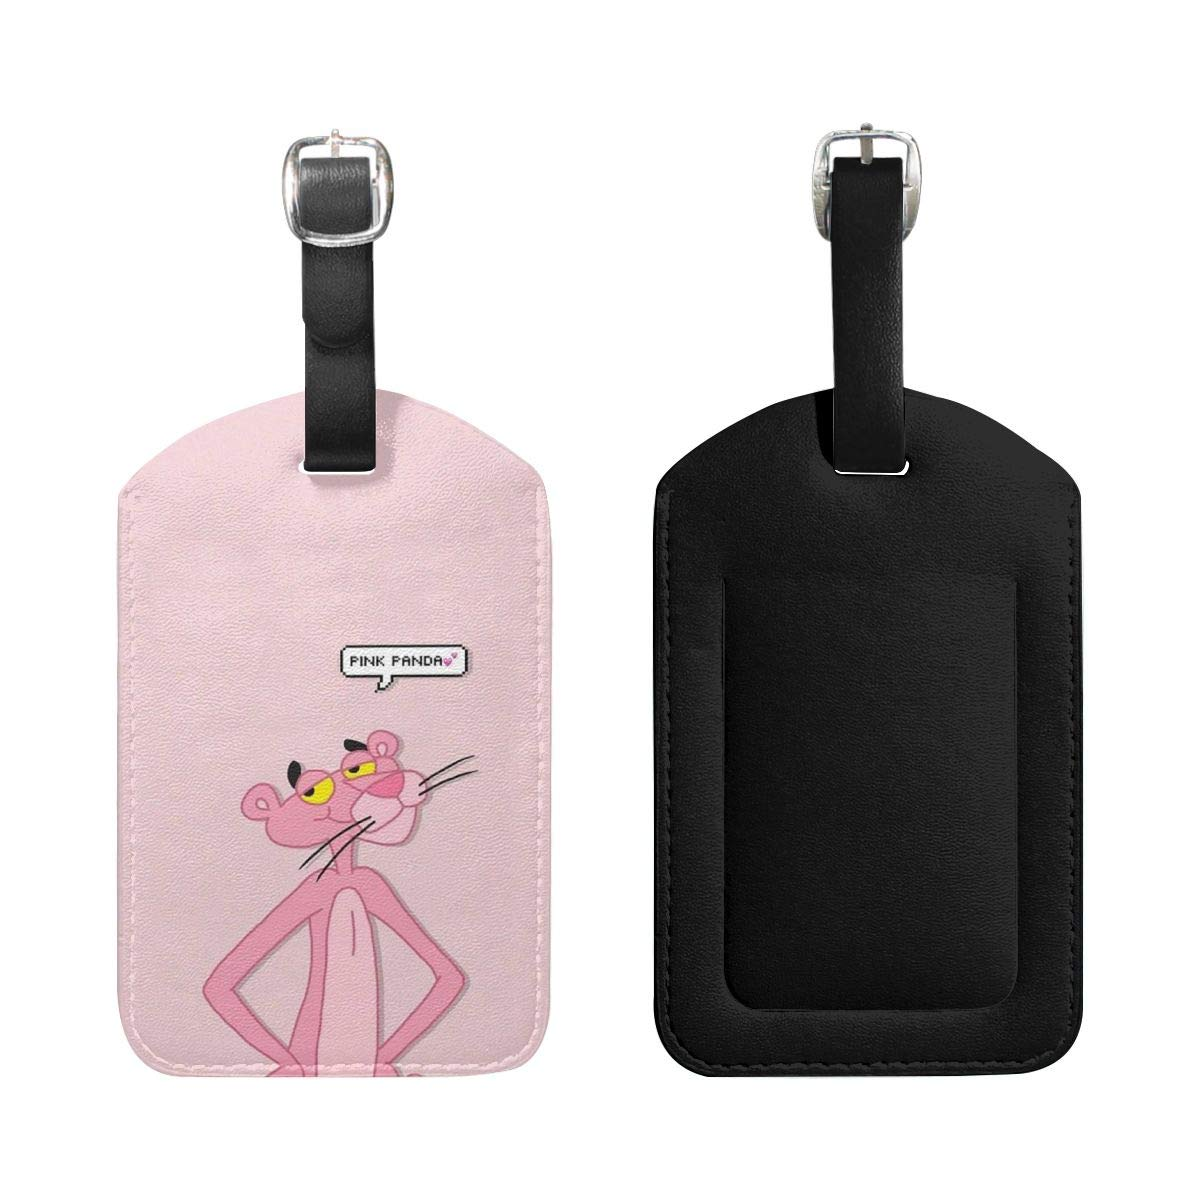 PU Leather Luggage Tags Pink Panther Suitcase Labels Bag Adjustable Leather Strap Travel Accessories Set of 2